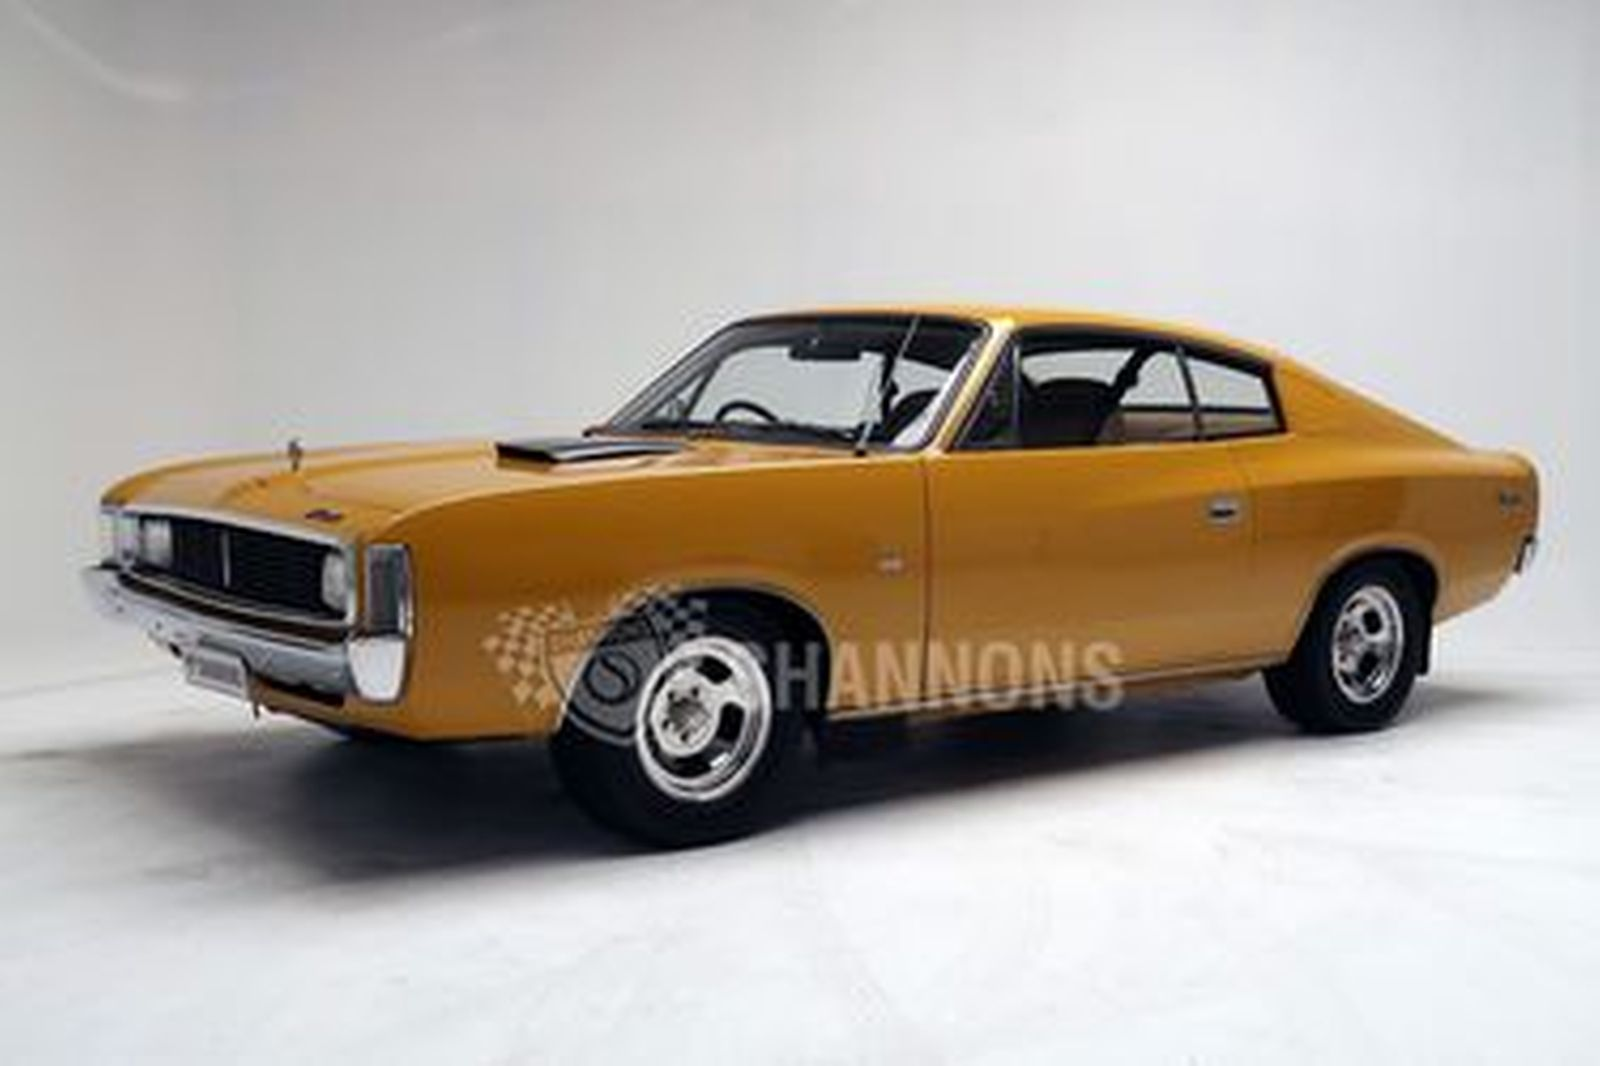 Chrysler Valiant VH Charger XL 265 Coupe